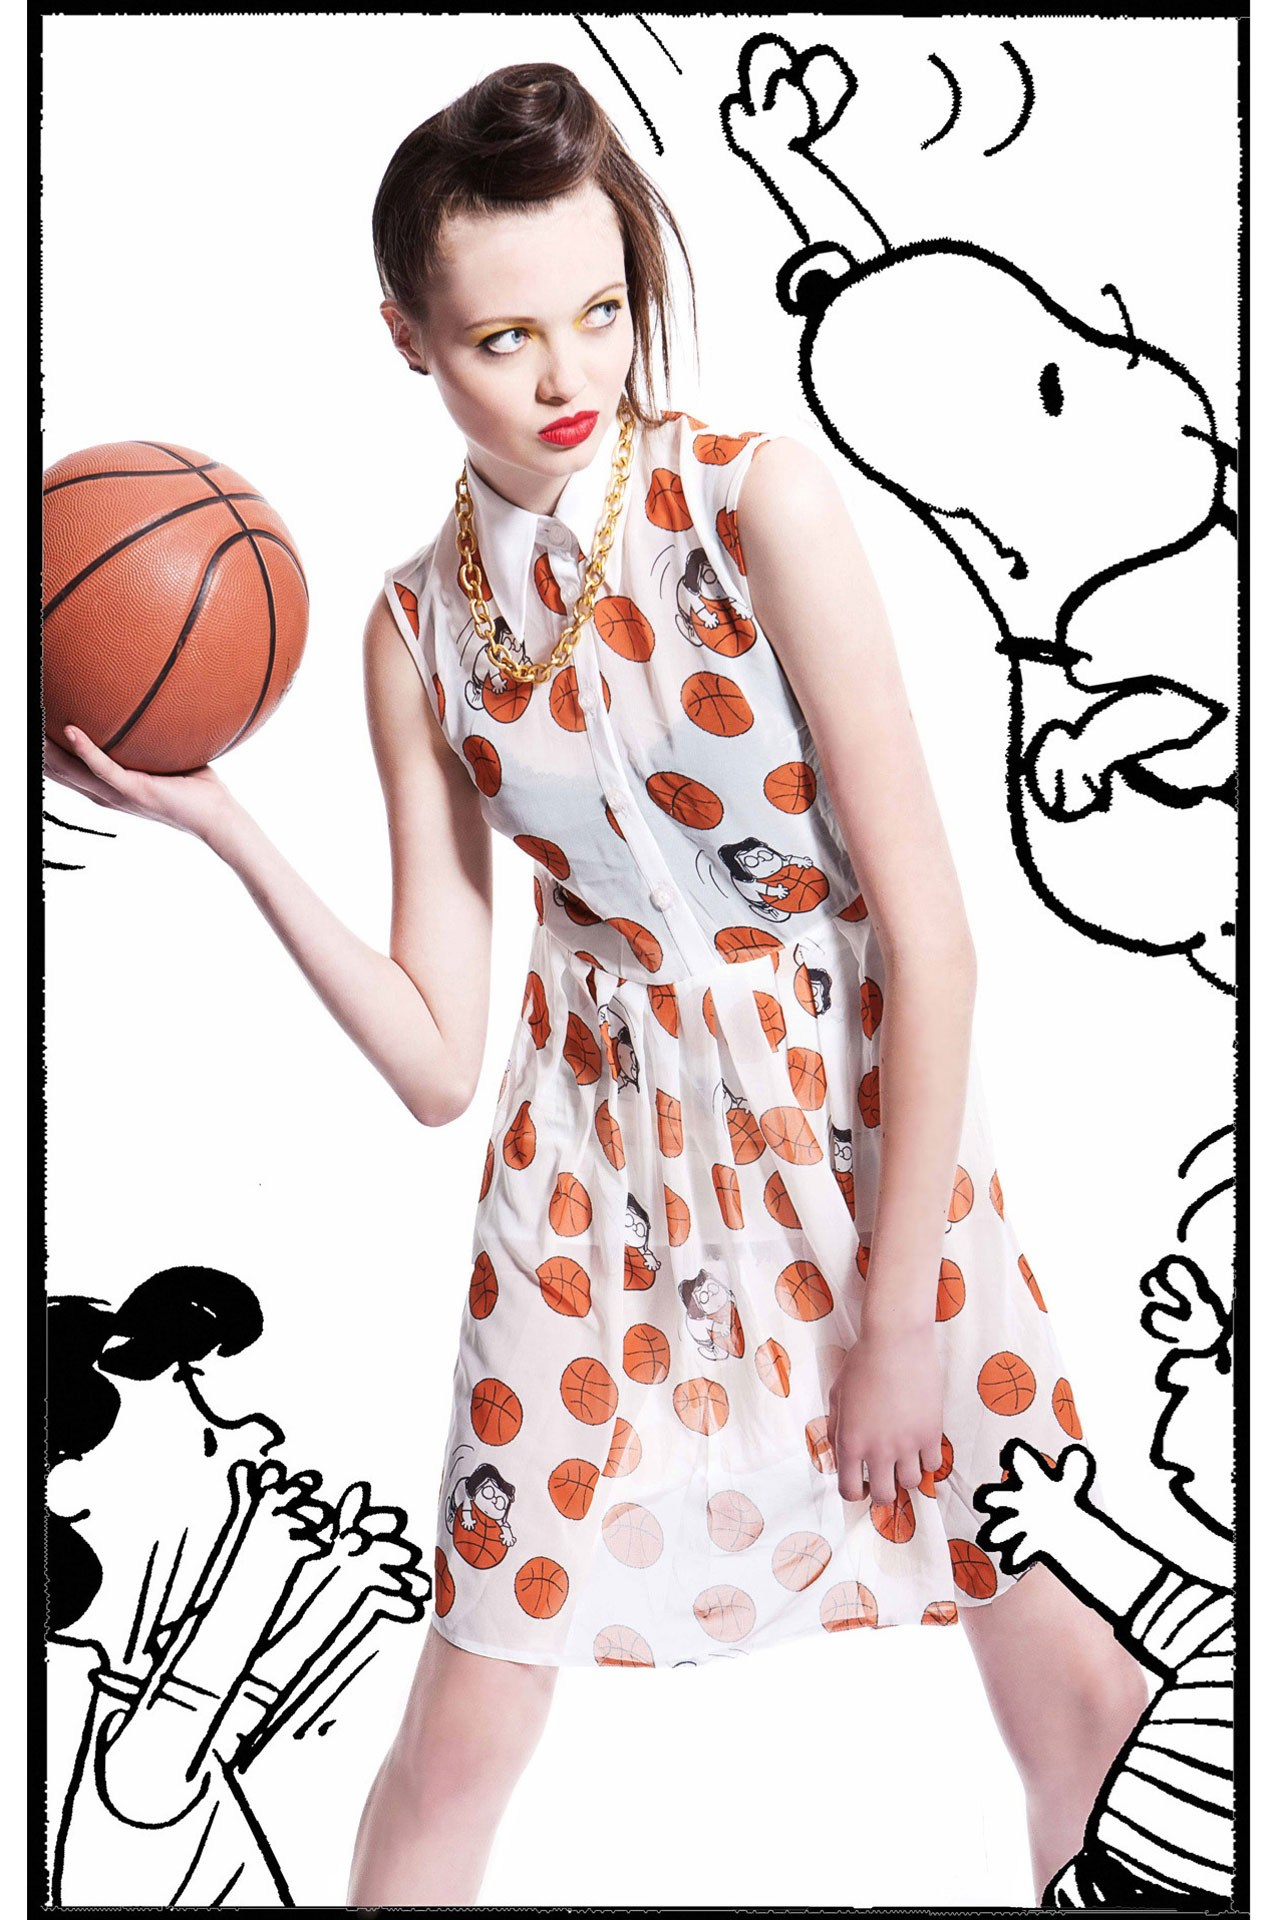 Rodnik-Peanuts-04-Vogue-21May13-Andrew Farrar_b